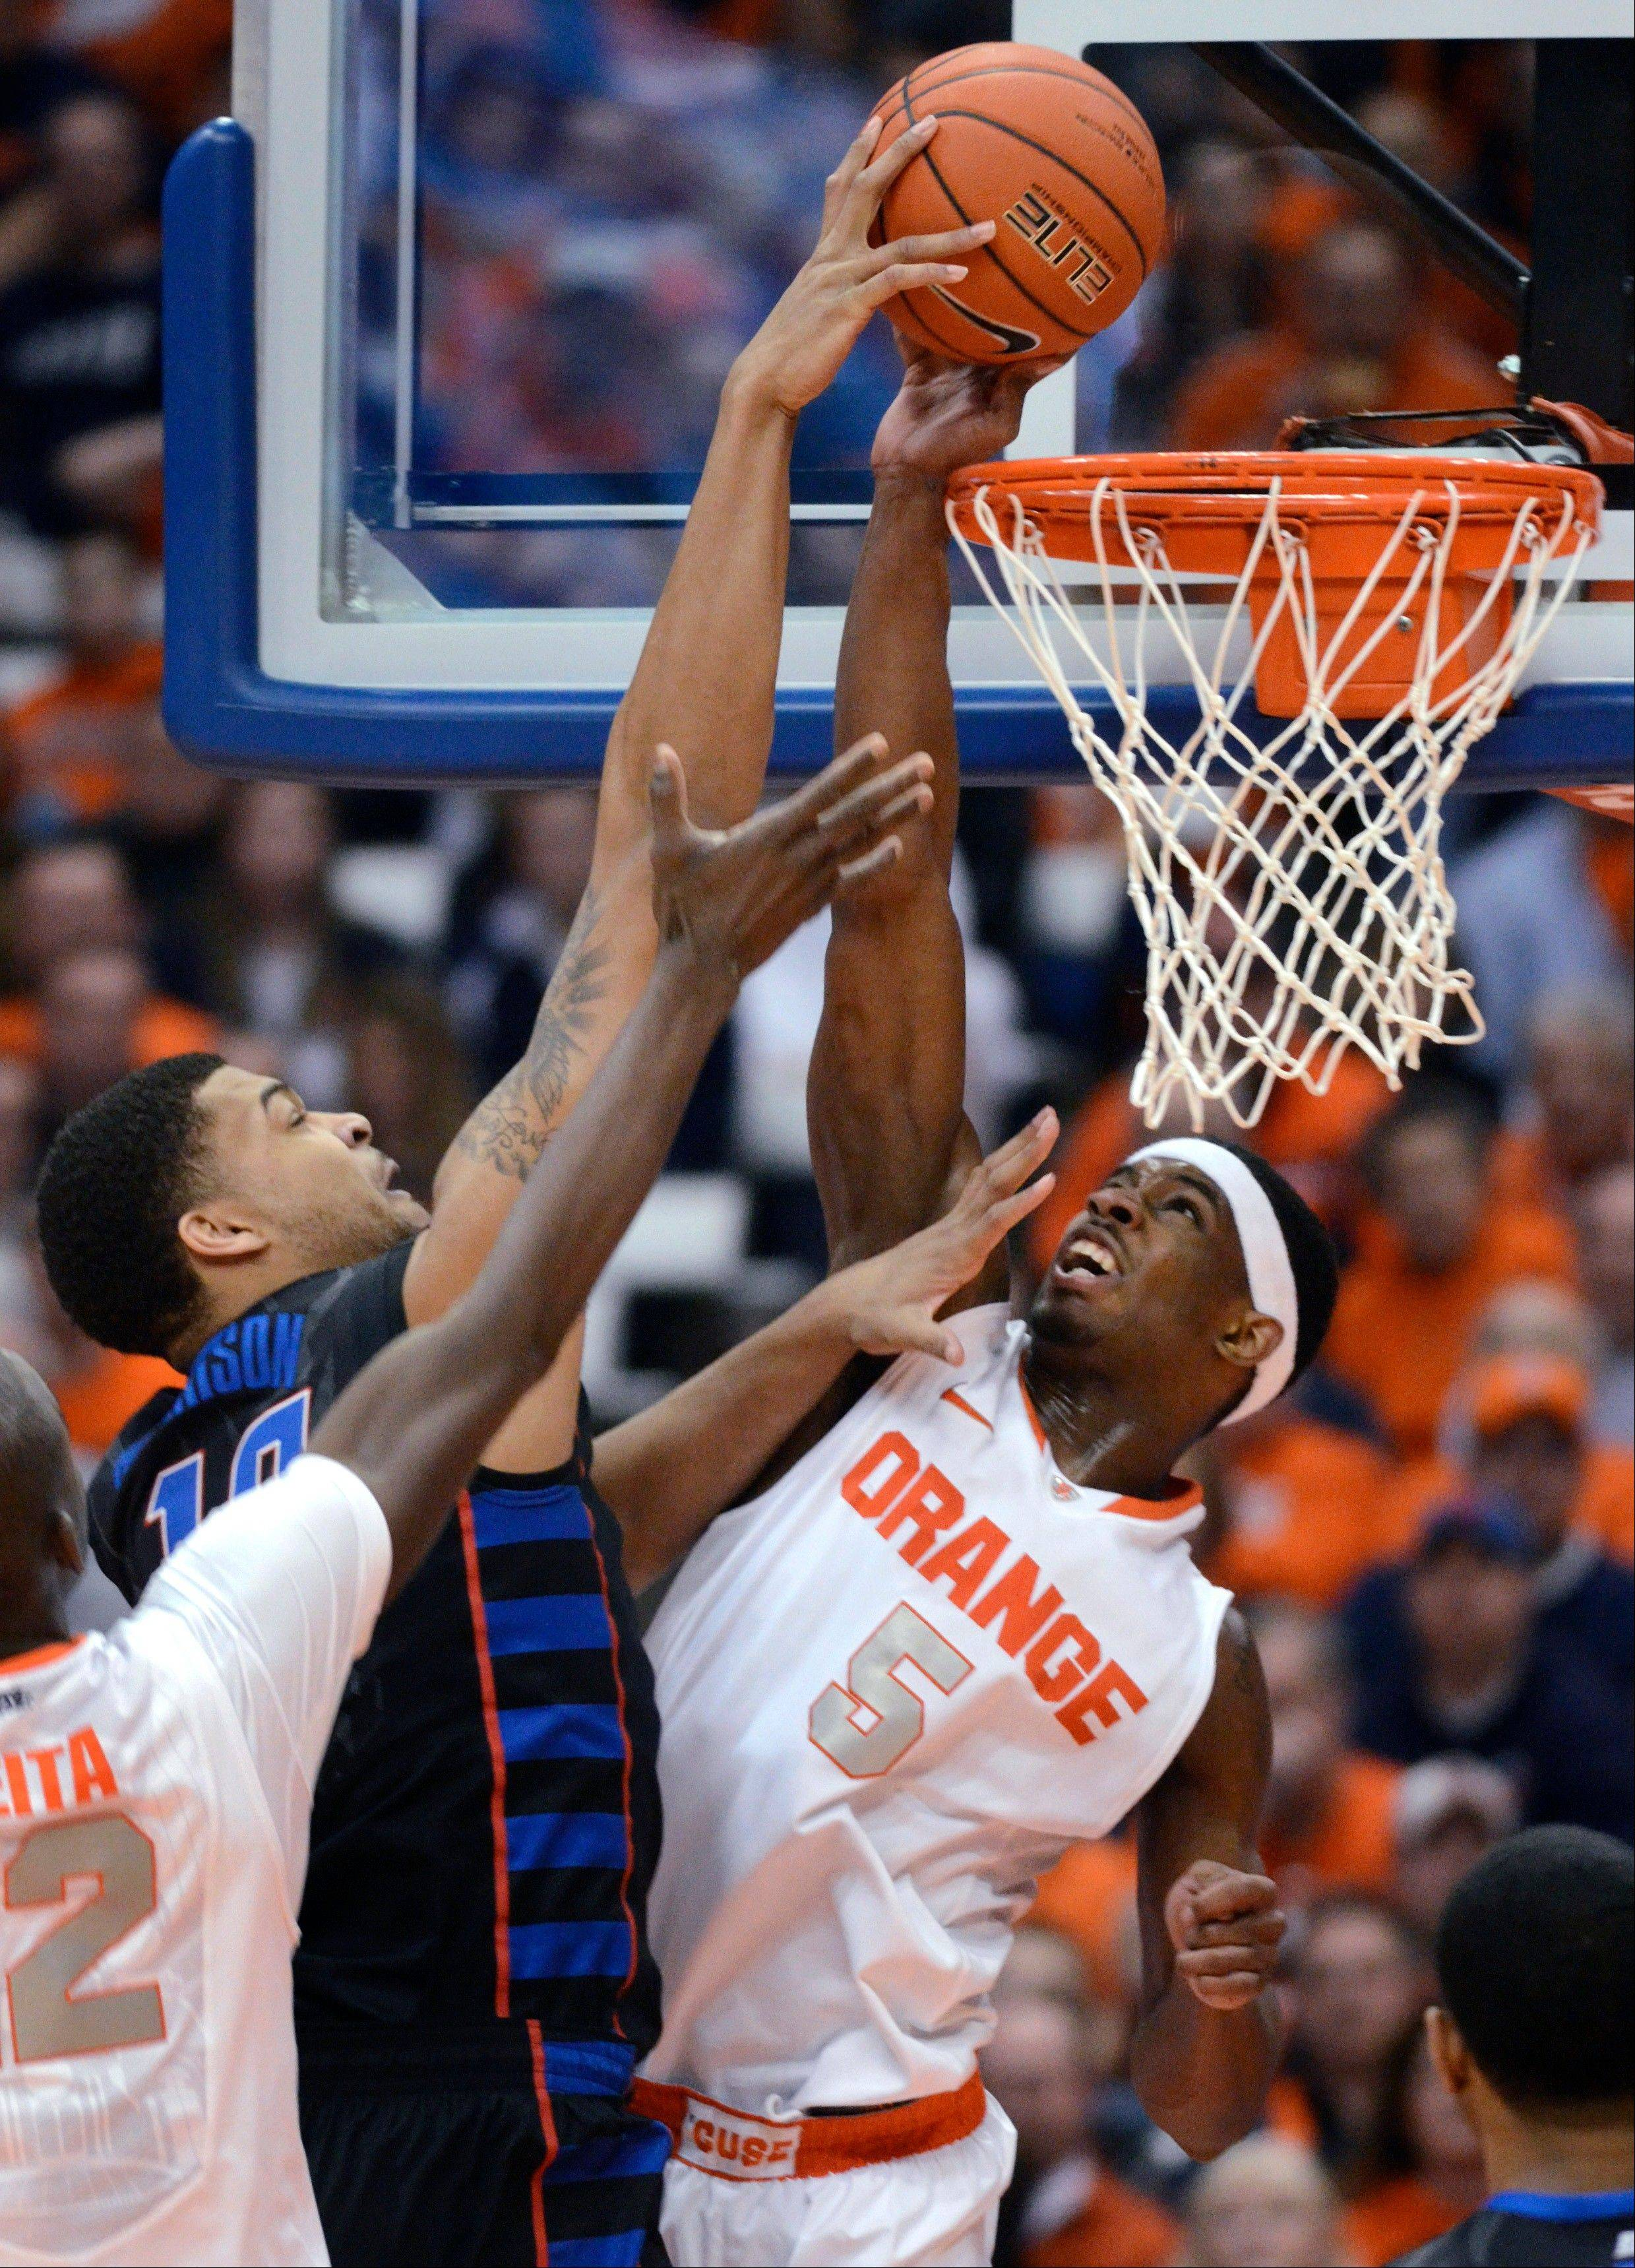 Syracuse's C.J. Fair stops DePaul's Derrell Robertson from scoring during the second half in an NCAA college basketball game in Syracuse, N.Y., Wednesday, March 6, 2013. Syracuse won 78-57. (AP Photo/Kevin Rivoli)